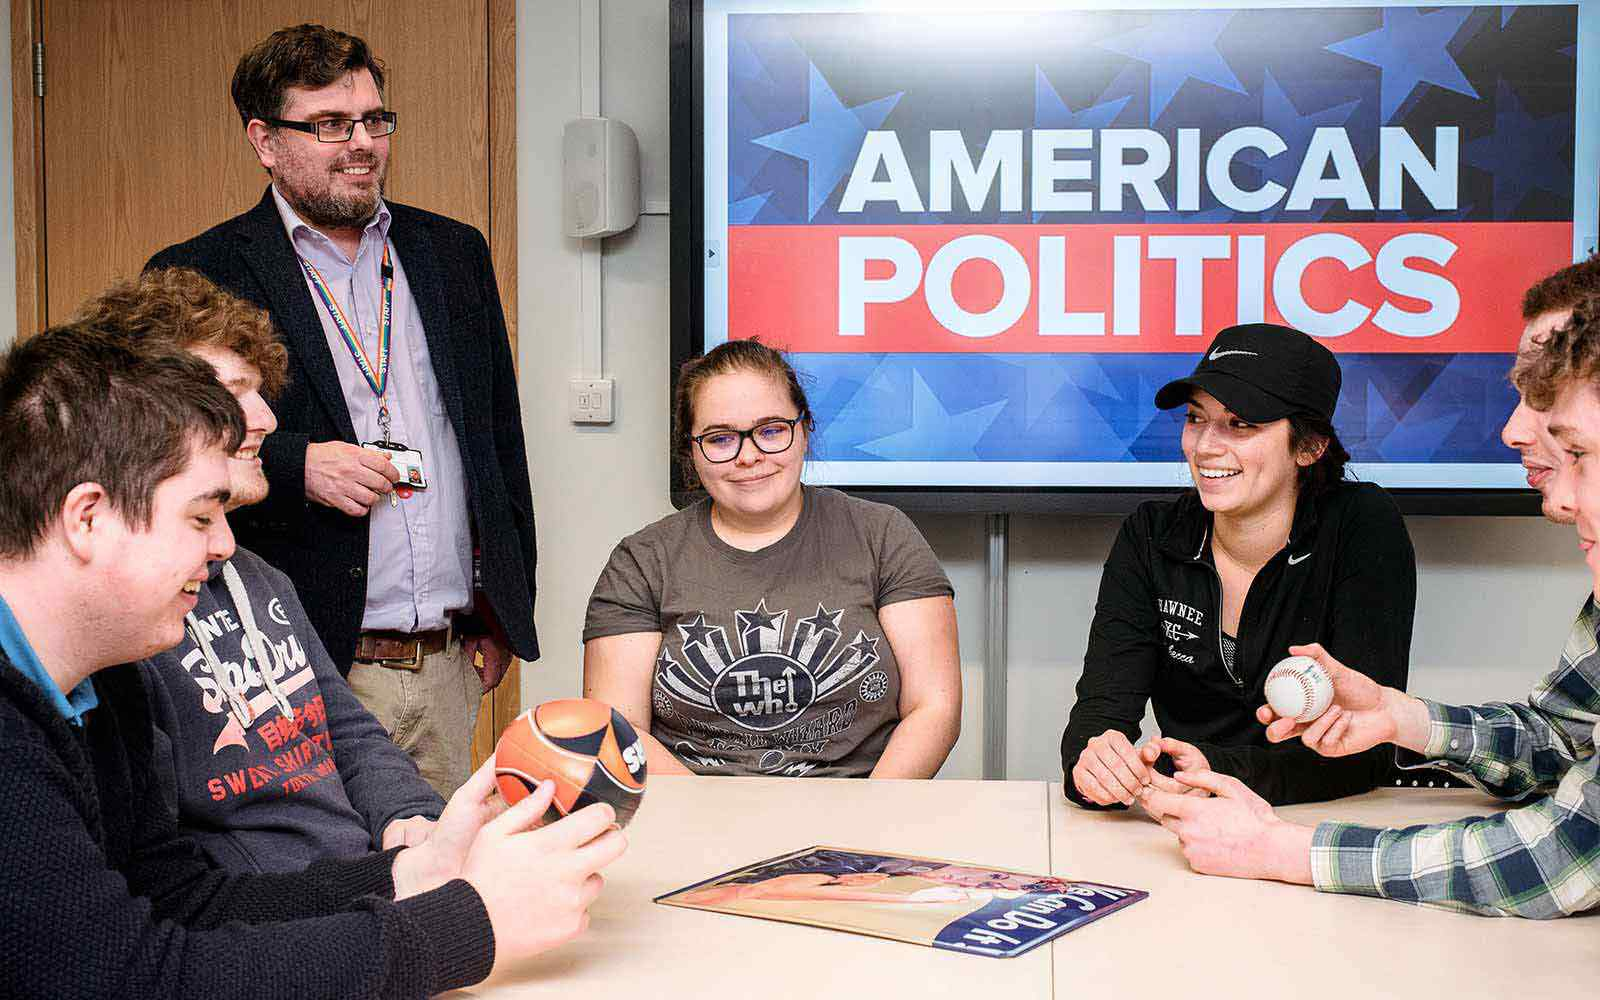 students and lecturer discuss American politics